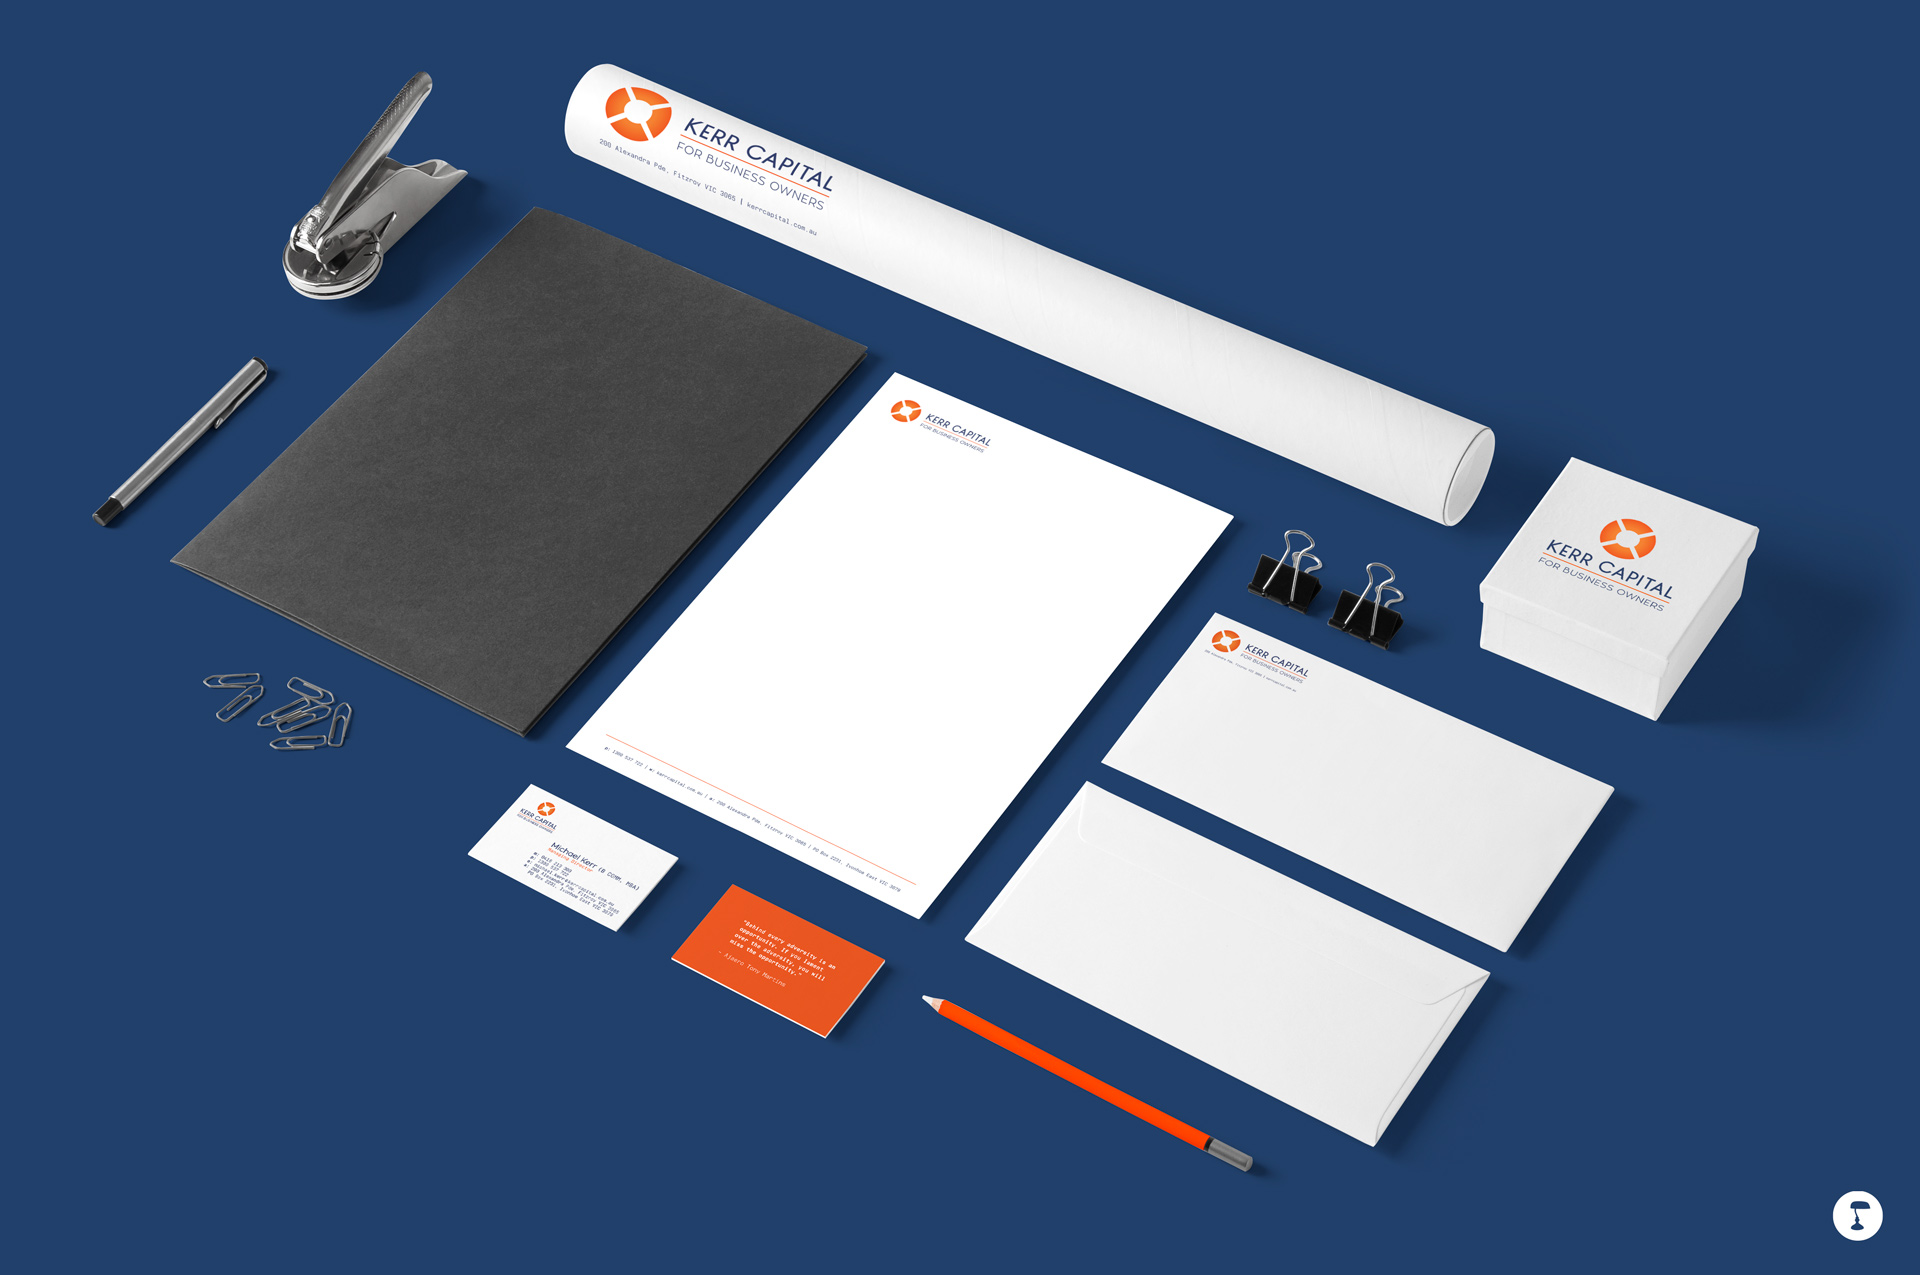 kerr_capital_-_mock-up_-_stationery_-_01.jpg